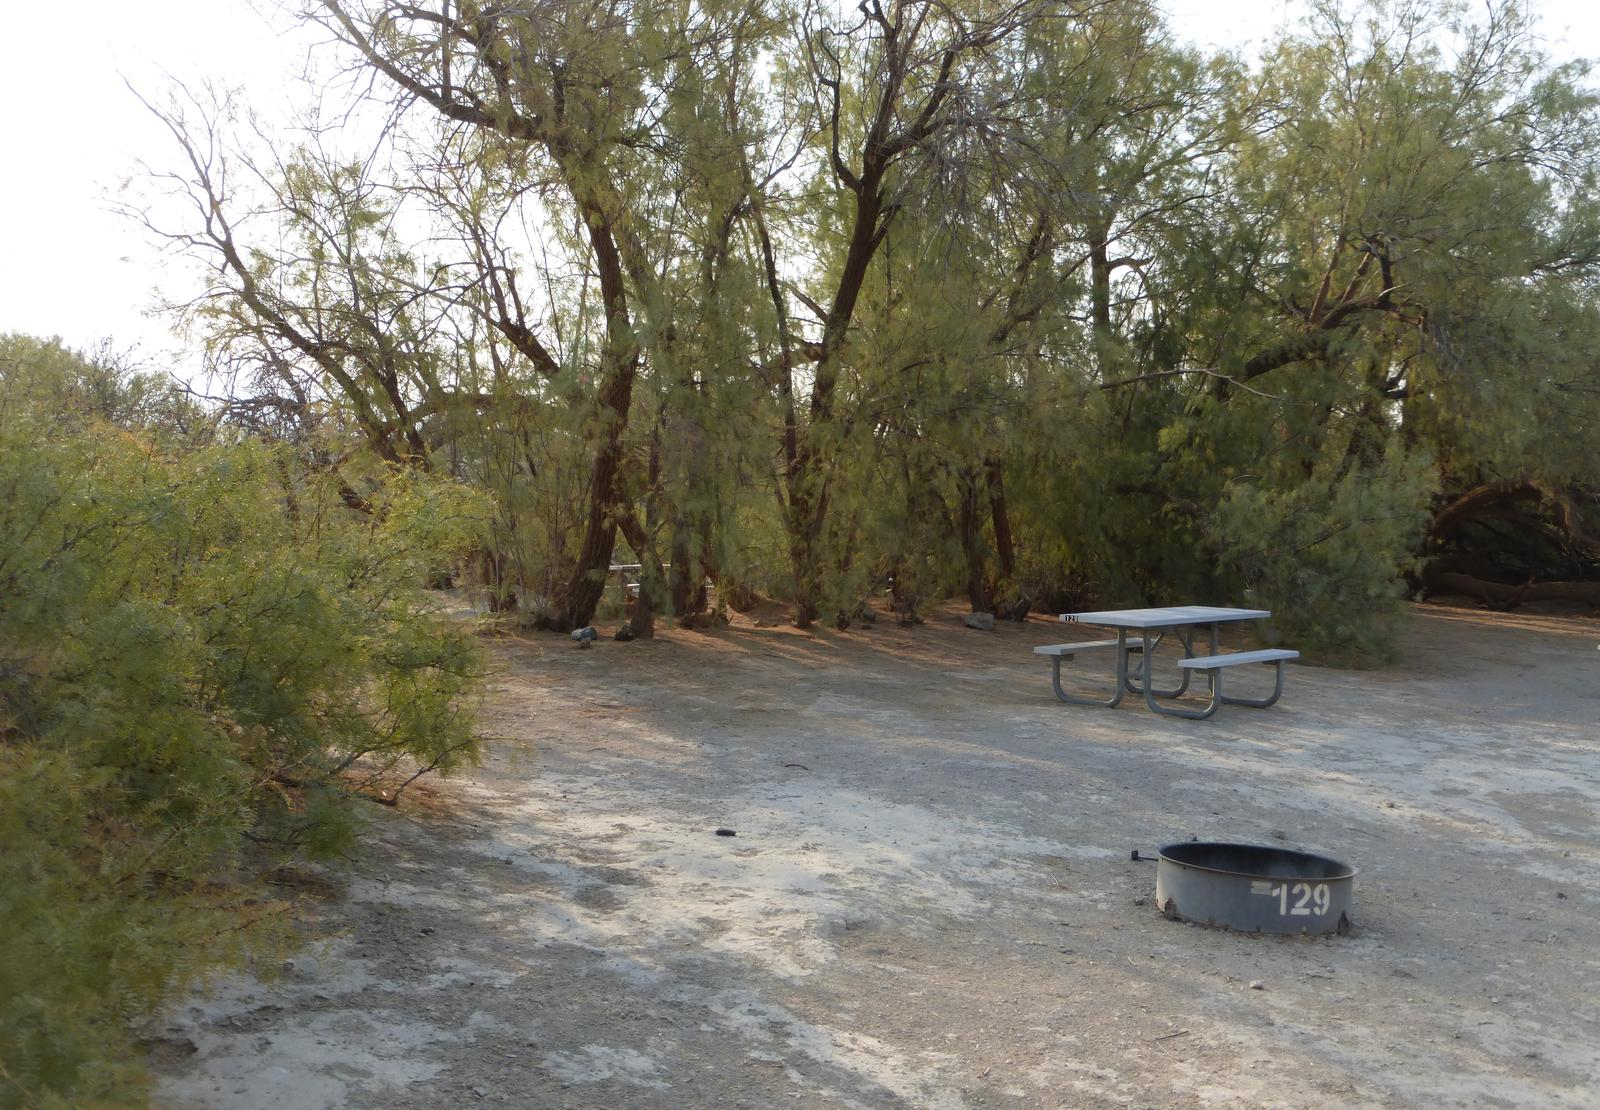 Tent only walk in site #129.  No campervans, RV's, or pop up tents.  One firepit with grate and one picnic table.  No utilities.